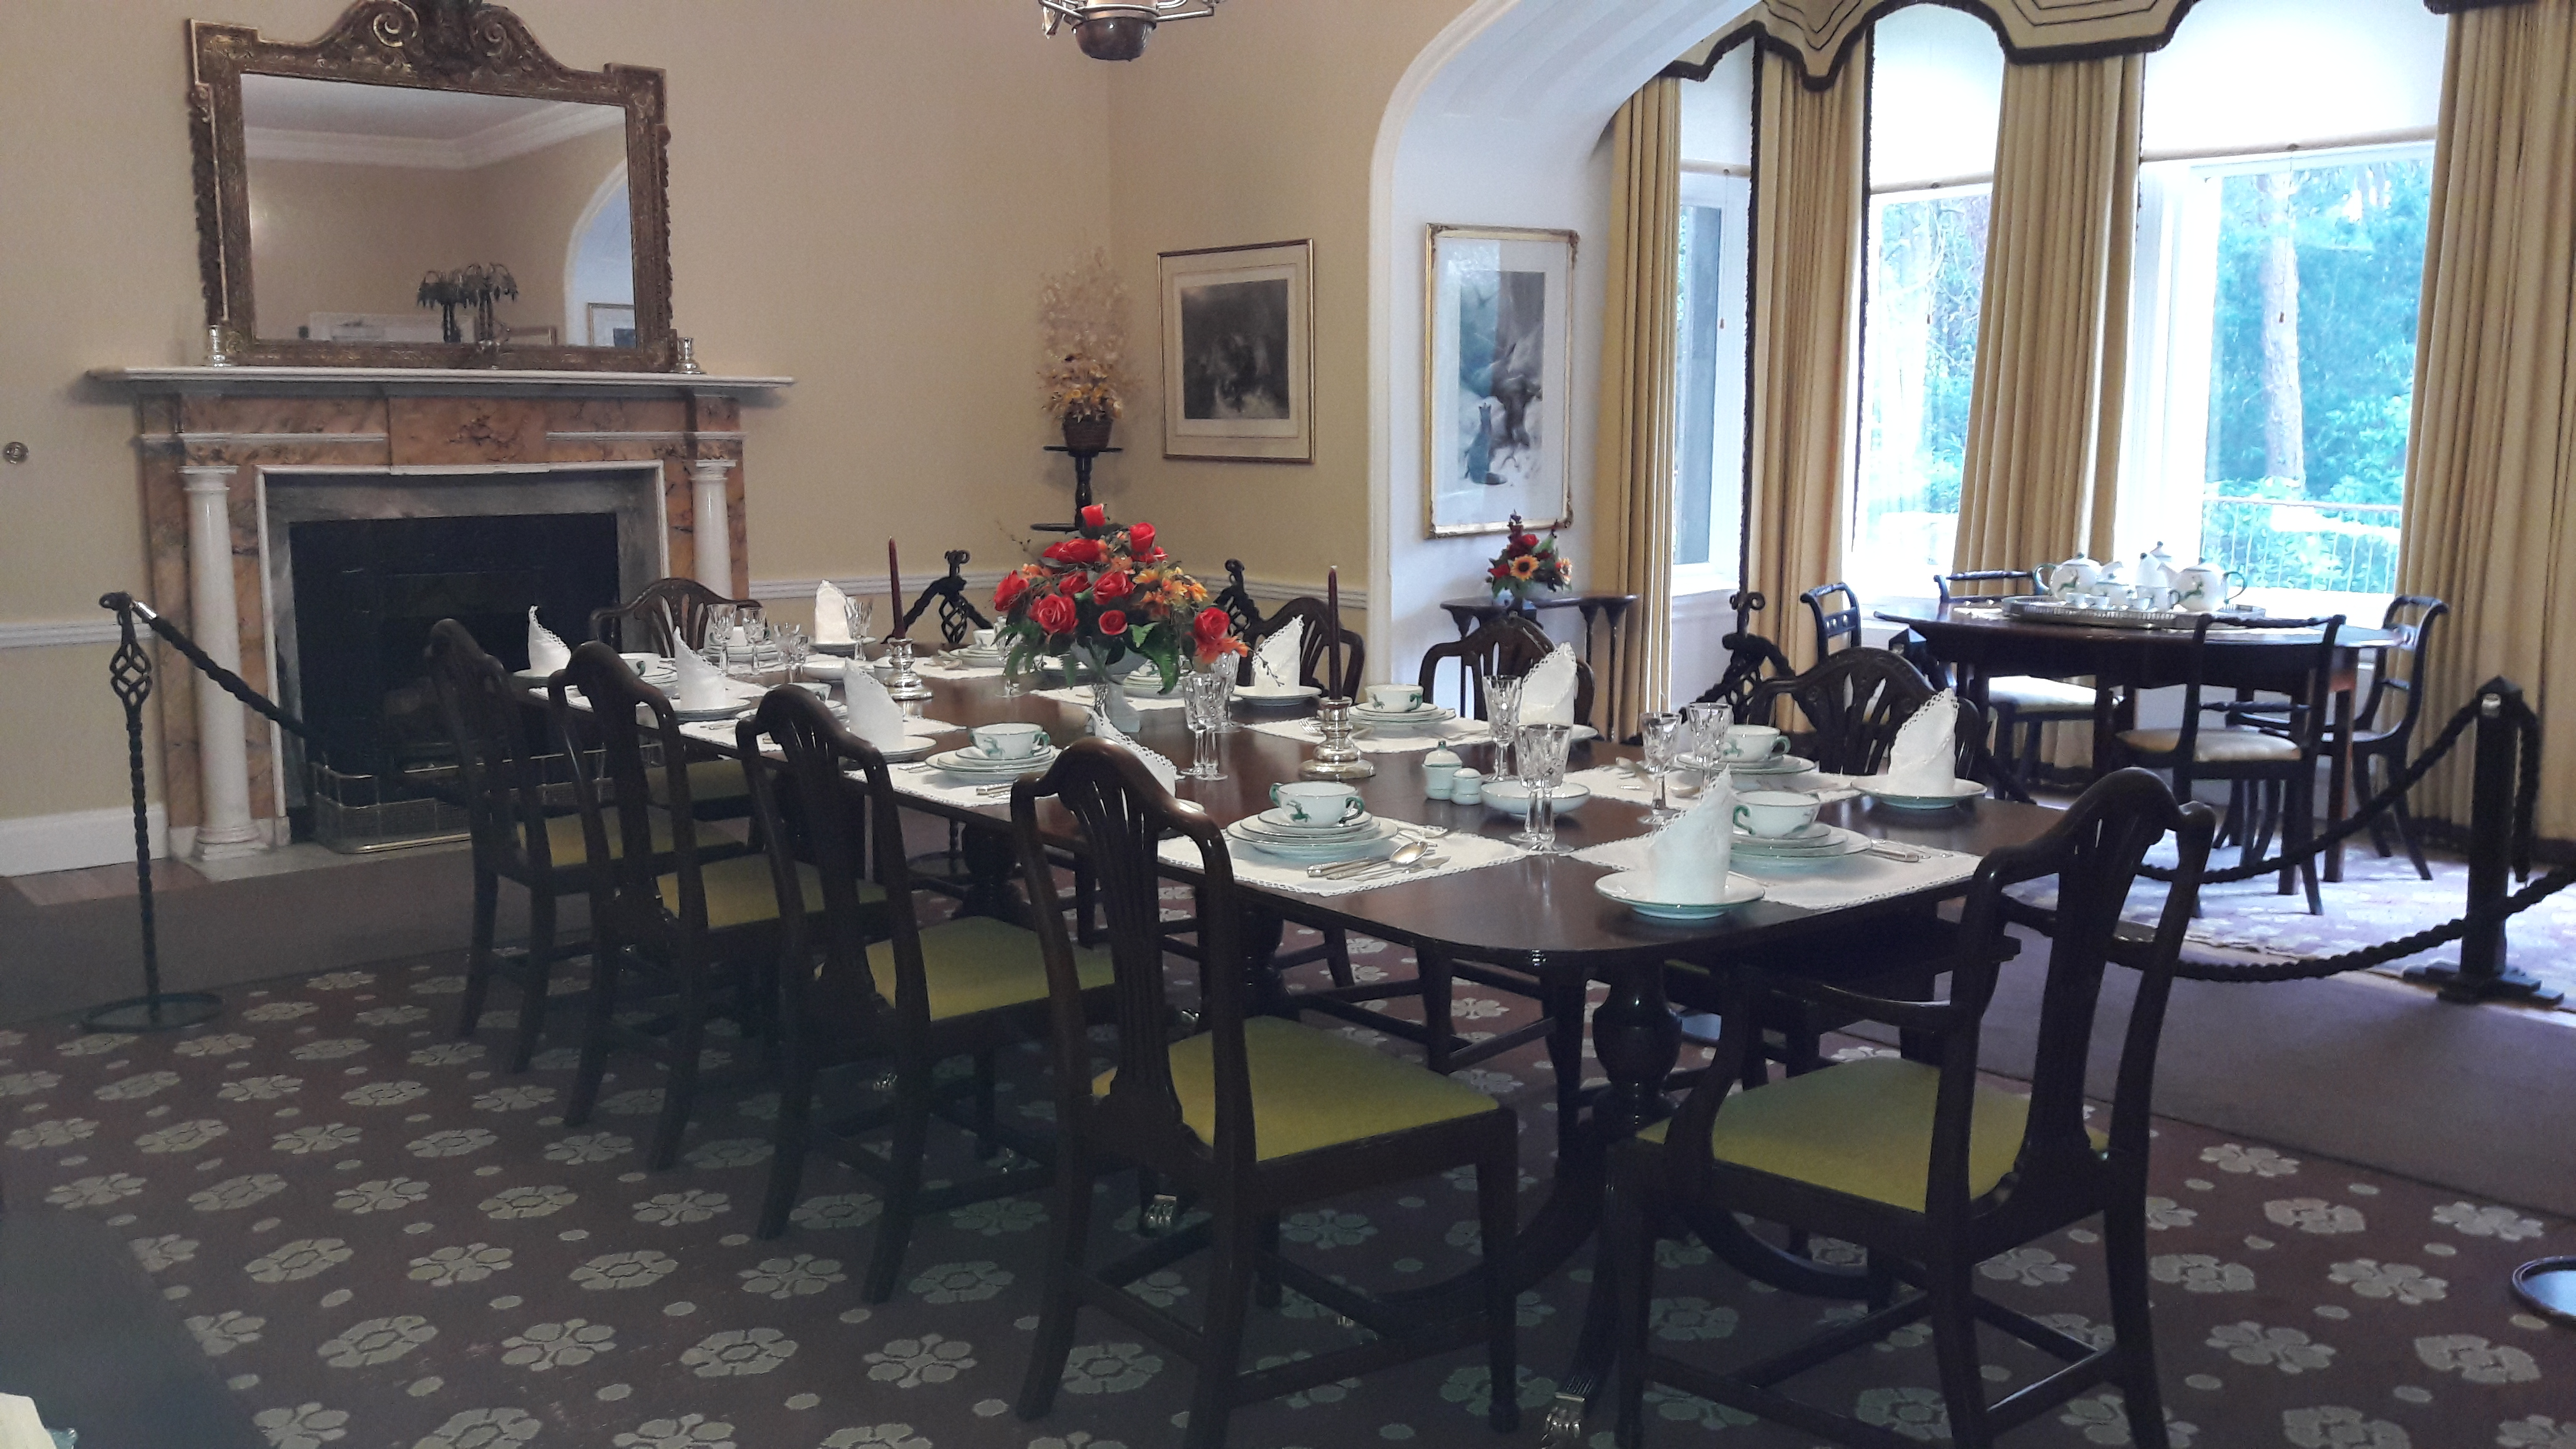 Dining Room in Glenveagh Castle